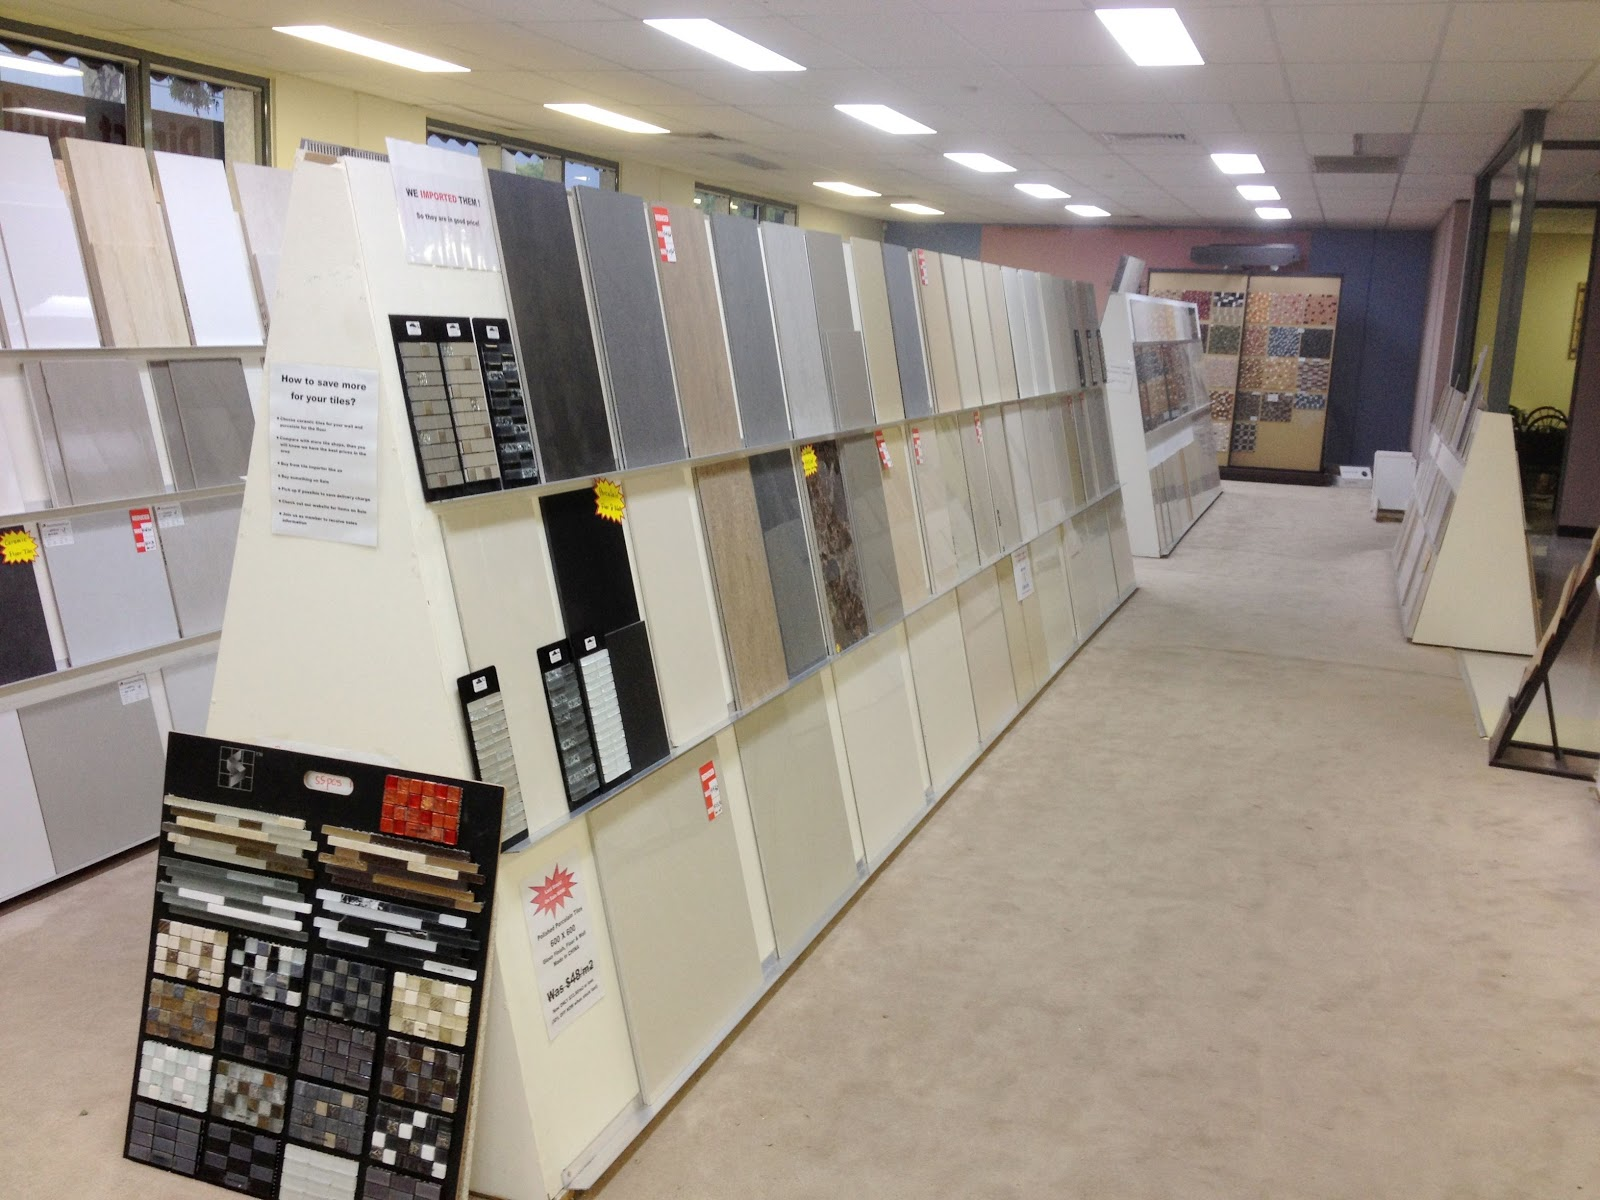 Introducing Bayswater Tile Bathroom Shop: Bayswater Tile ...